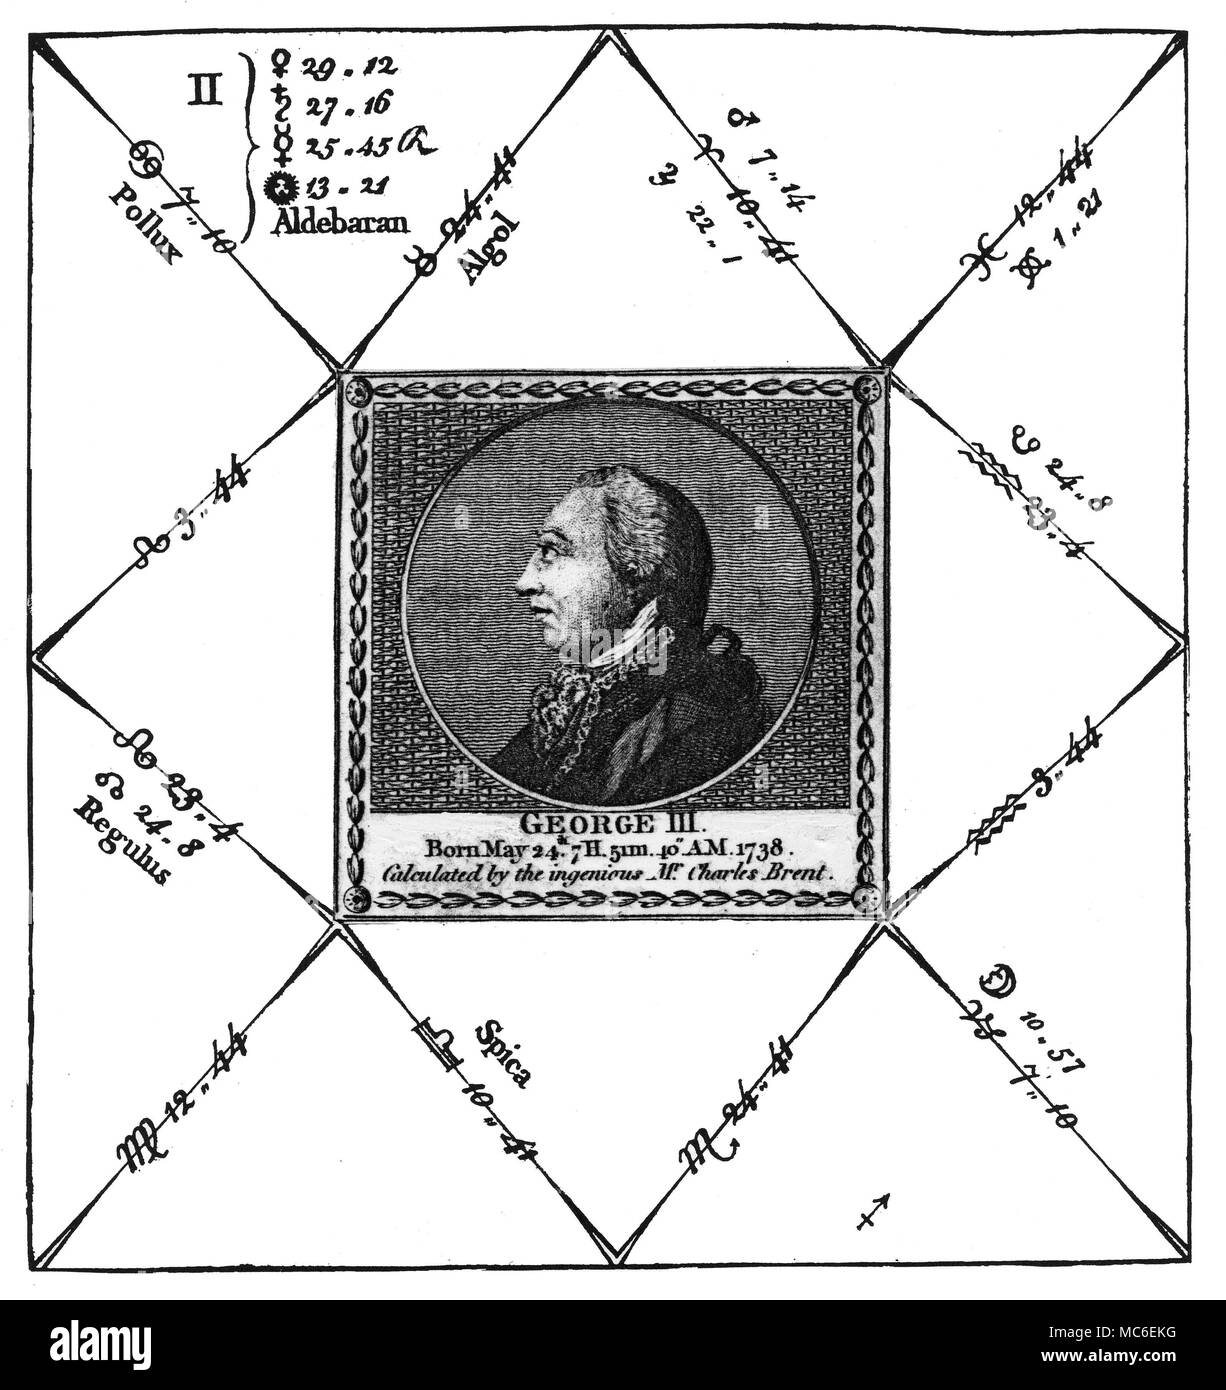 Astrology Horoscopes The Birth Chart Of King George Iii Of England